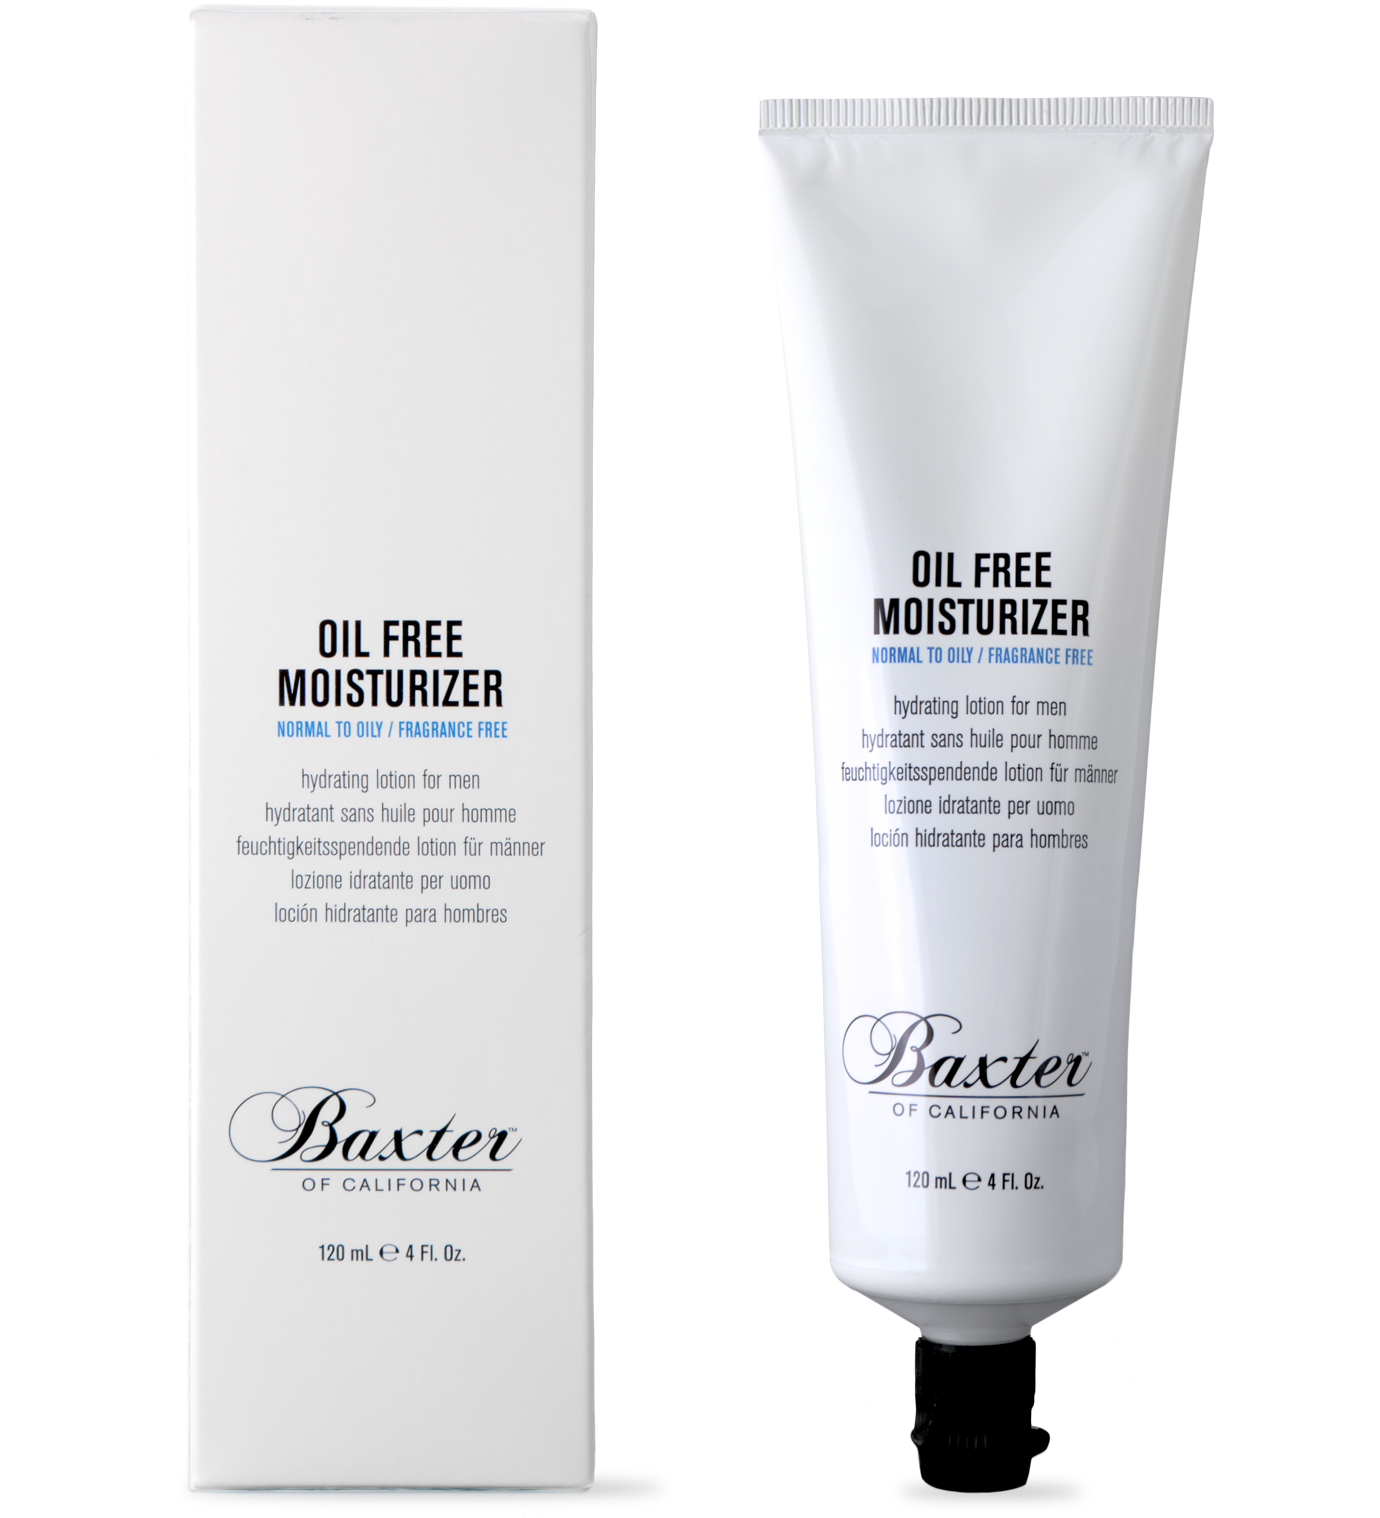 Baxter of California Oil Free Moisturizer